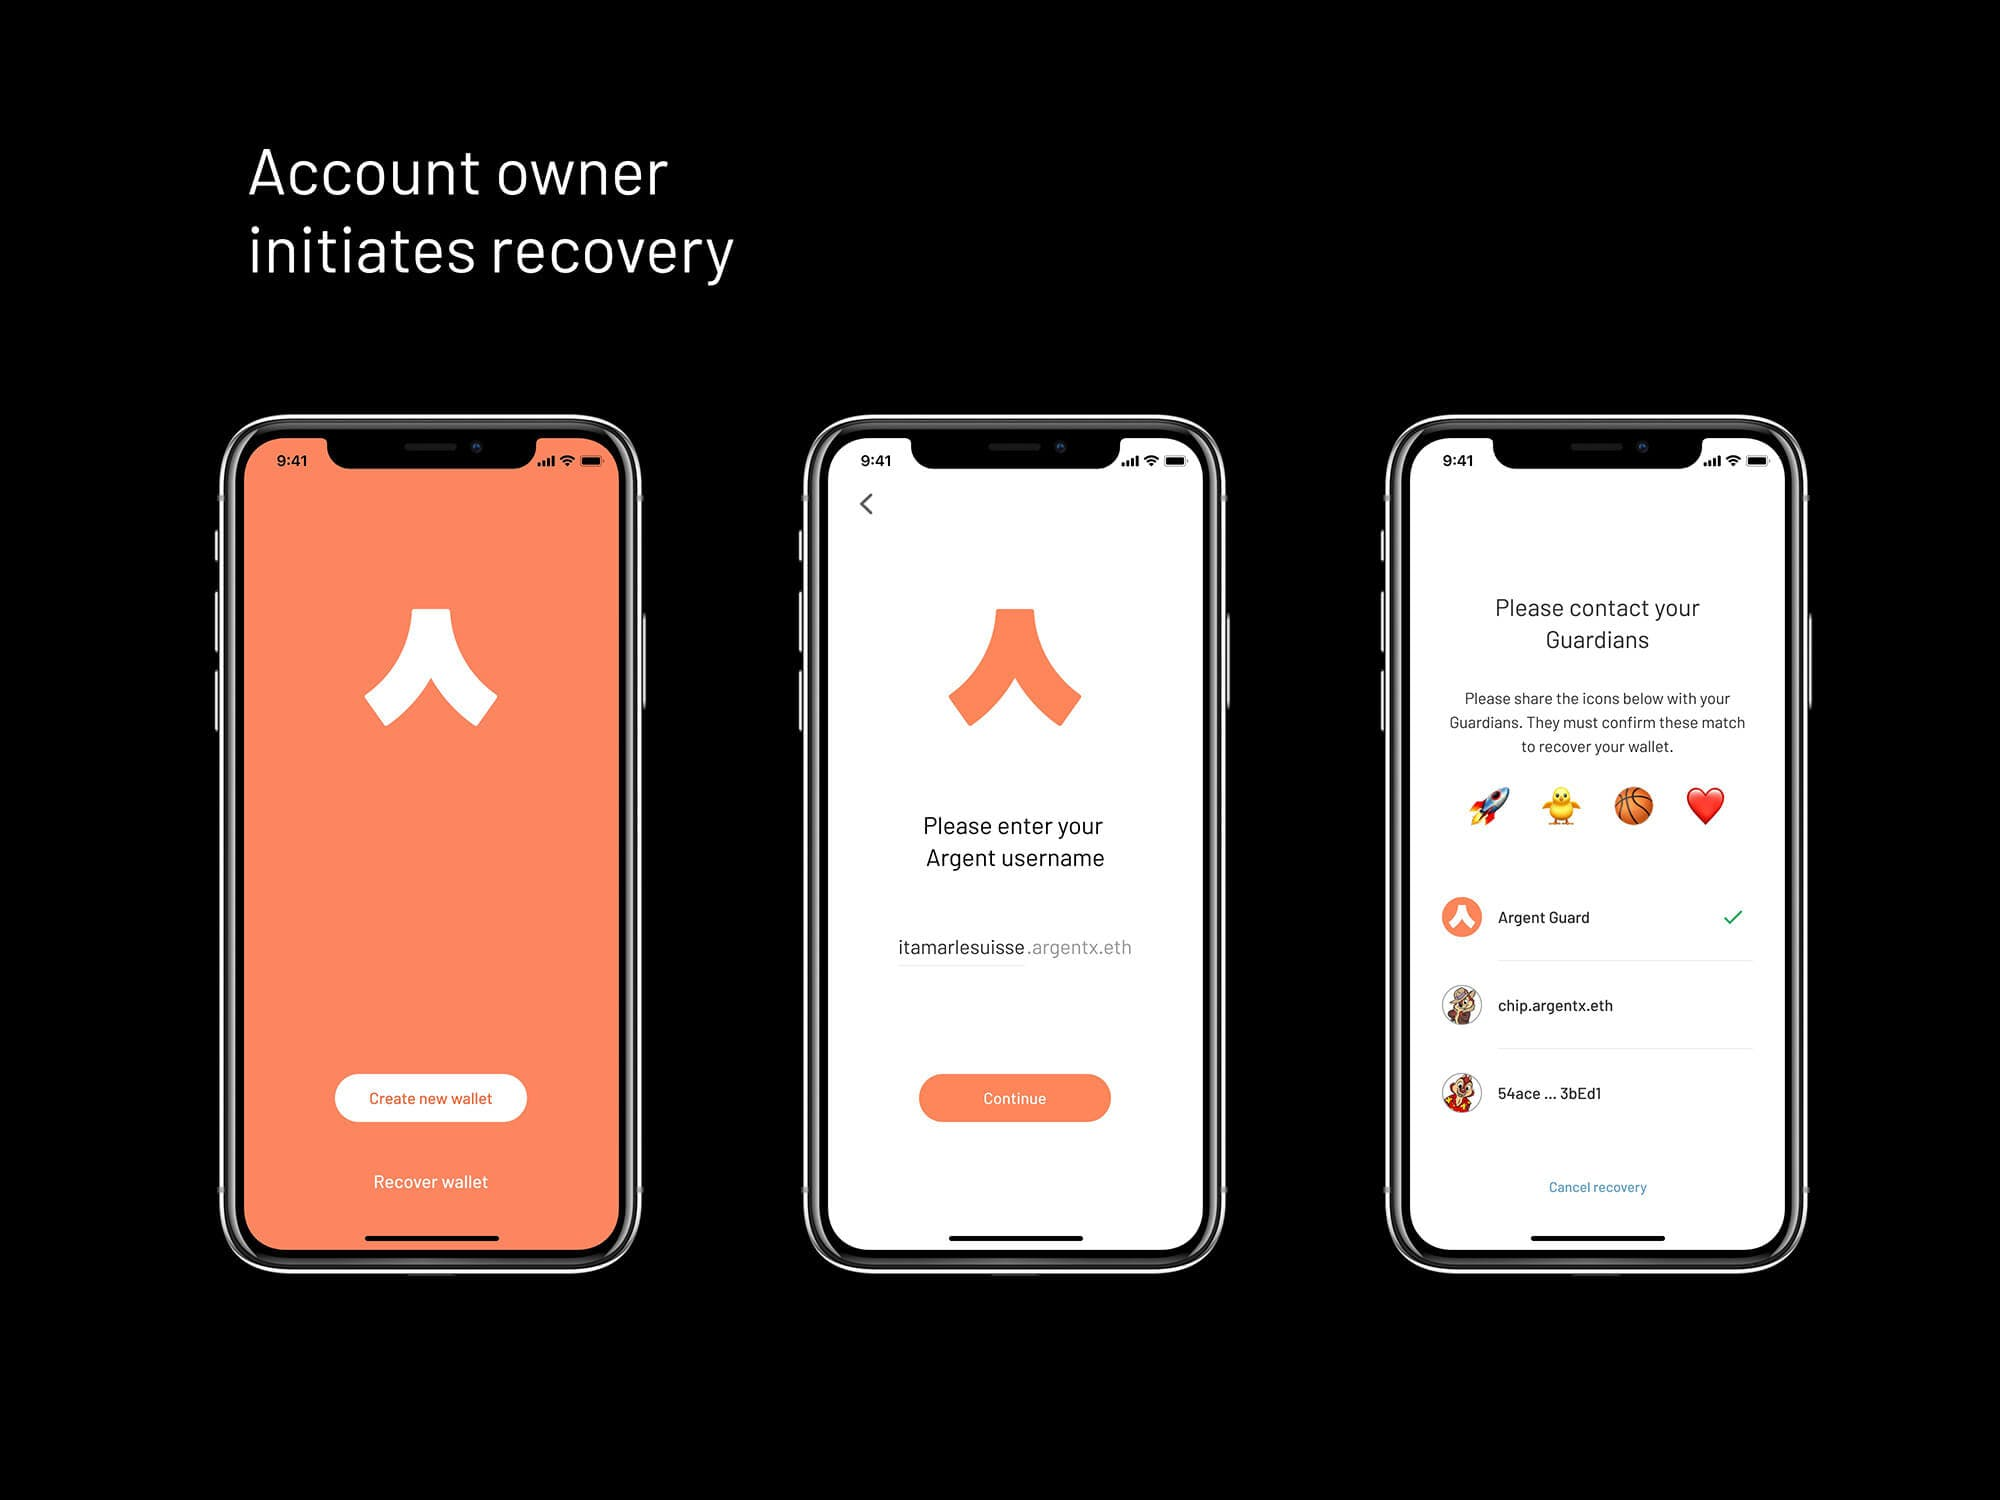 Starting Argent Ethereum wallet recovery